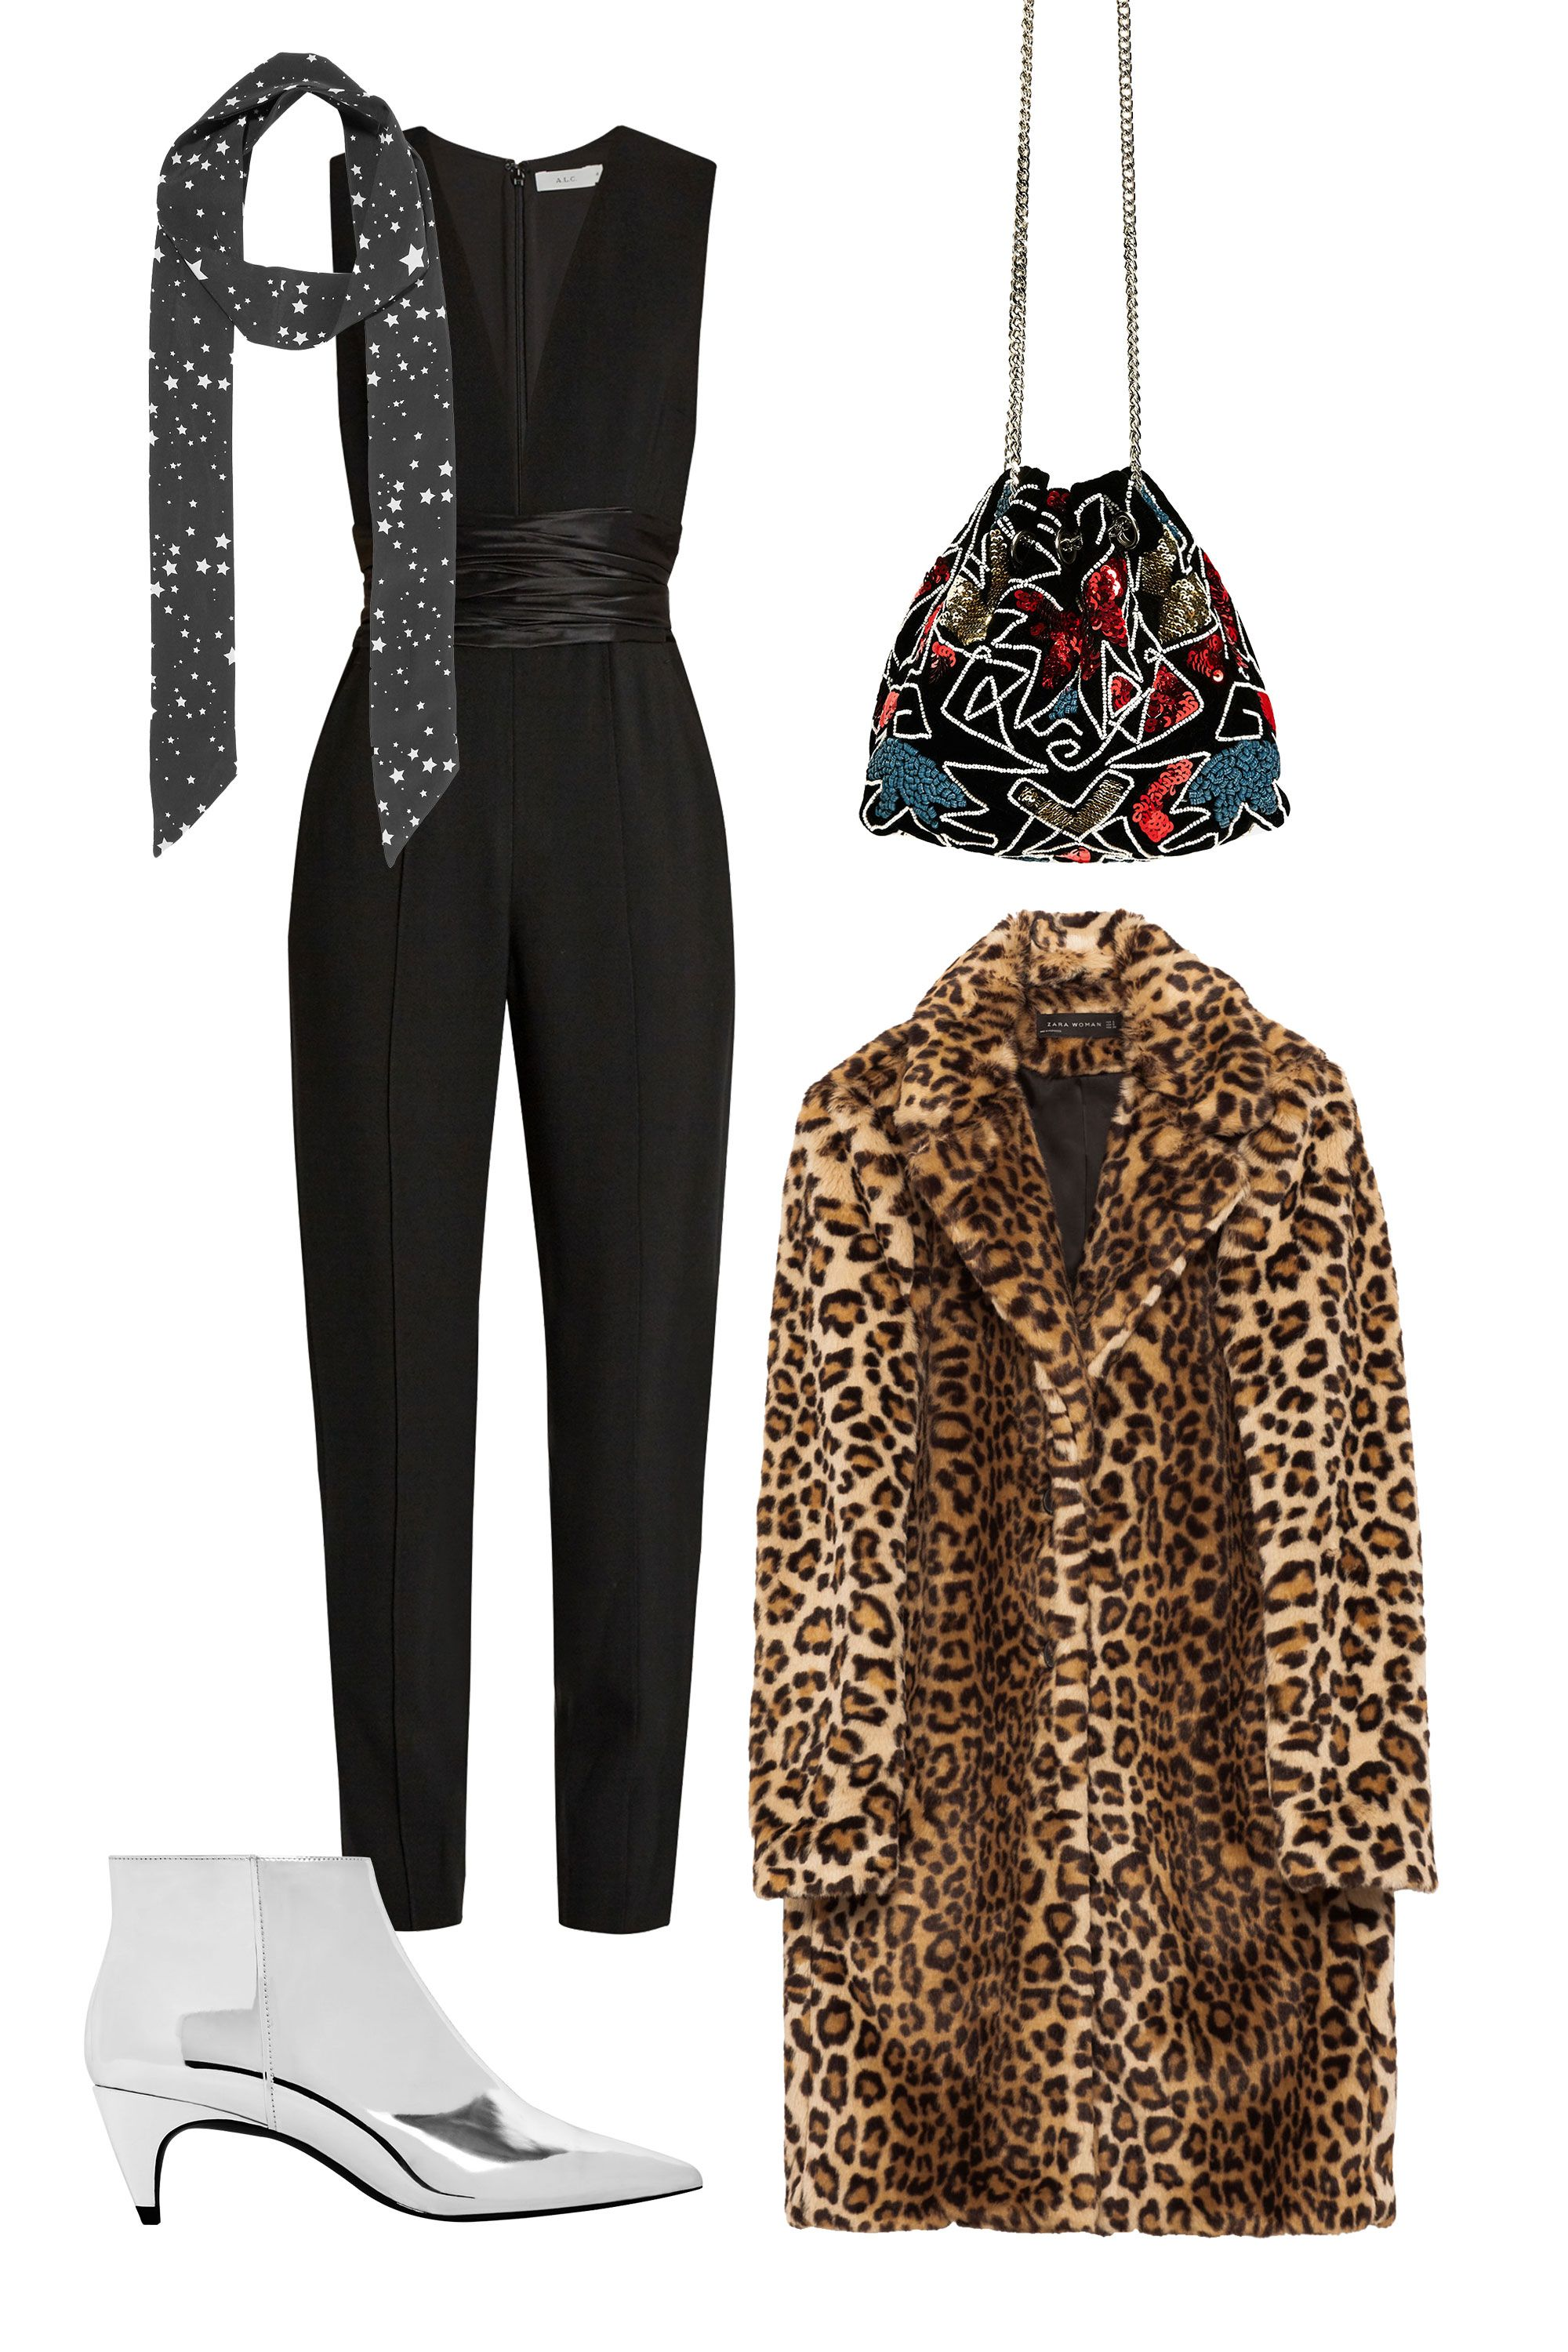 "<p>If your date night involves a red velvet rope and a to-die-for DJ, shimmy your way into his heart in eye-catching outerwear atop your favorite LBJ—little black jumpsuit. </p><p><em data-redactor-tag=""em"" data-verified=""redactor"">Kate Moss for Equipment Bria Printed Washed-Silk Scarf, $80, <a href=""https://www.net-a-porter.com/us/en/product/809057/kate_moss_for_equipment/bria-printed-washed-silk-scarf"" target=""_blank"" data-tracking-id=""recirc-text-link"">netaporter.com</a>; A.L.C. Beni Ruched-Waist Crepe Jumpsuit, $695, <a href=""http://www.matchesfashion.com/us/products/A-L-C--Beni-ruched-waist-crepe-jumpsuit--1080425"" target=""_blank"" data-tracking-id=""recirc-text-link"">matchesfashion.com</a>; Zara Evening Bucket Bag, $70, <a href=""http://www.zara.com/us/en/woman/bags/view-all/evening-bucket-bag-c734144p3926019.html"" target=""_blank"" data-tracking-id=""recirc-text-link"">zara.com</a>; Zara Faux Fur Leopard Coat, $169, <a href=""http://www.zara.com/us/en/woman/outerwear/view-all/faux-fur-leopard-coat-c733882p3978516.html"" target=""_blank"" data-tracking-id=""recirc-text-link"">zara.com</a>; Zara Laminated Mid Heel Ankle Boots, $70, <a href=""http://www.zara.com/us/en/woman/evening/laminated-mid-heel-ankle-boots-c661506p4065360.html"" target=""_blank"" data-tracking-id=""recirc-text-link"">zara.com</a></em></p>"